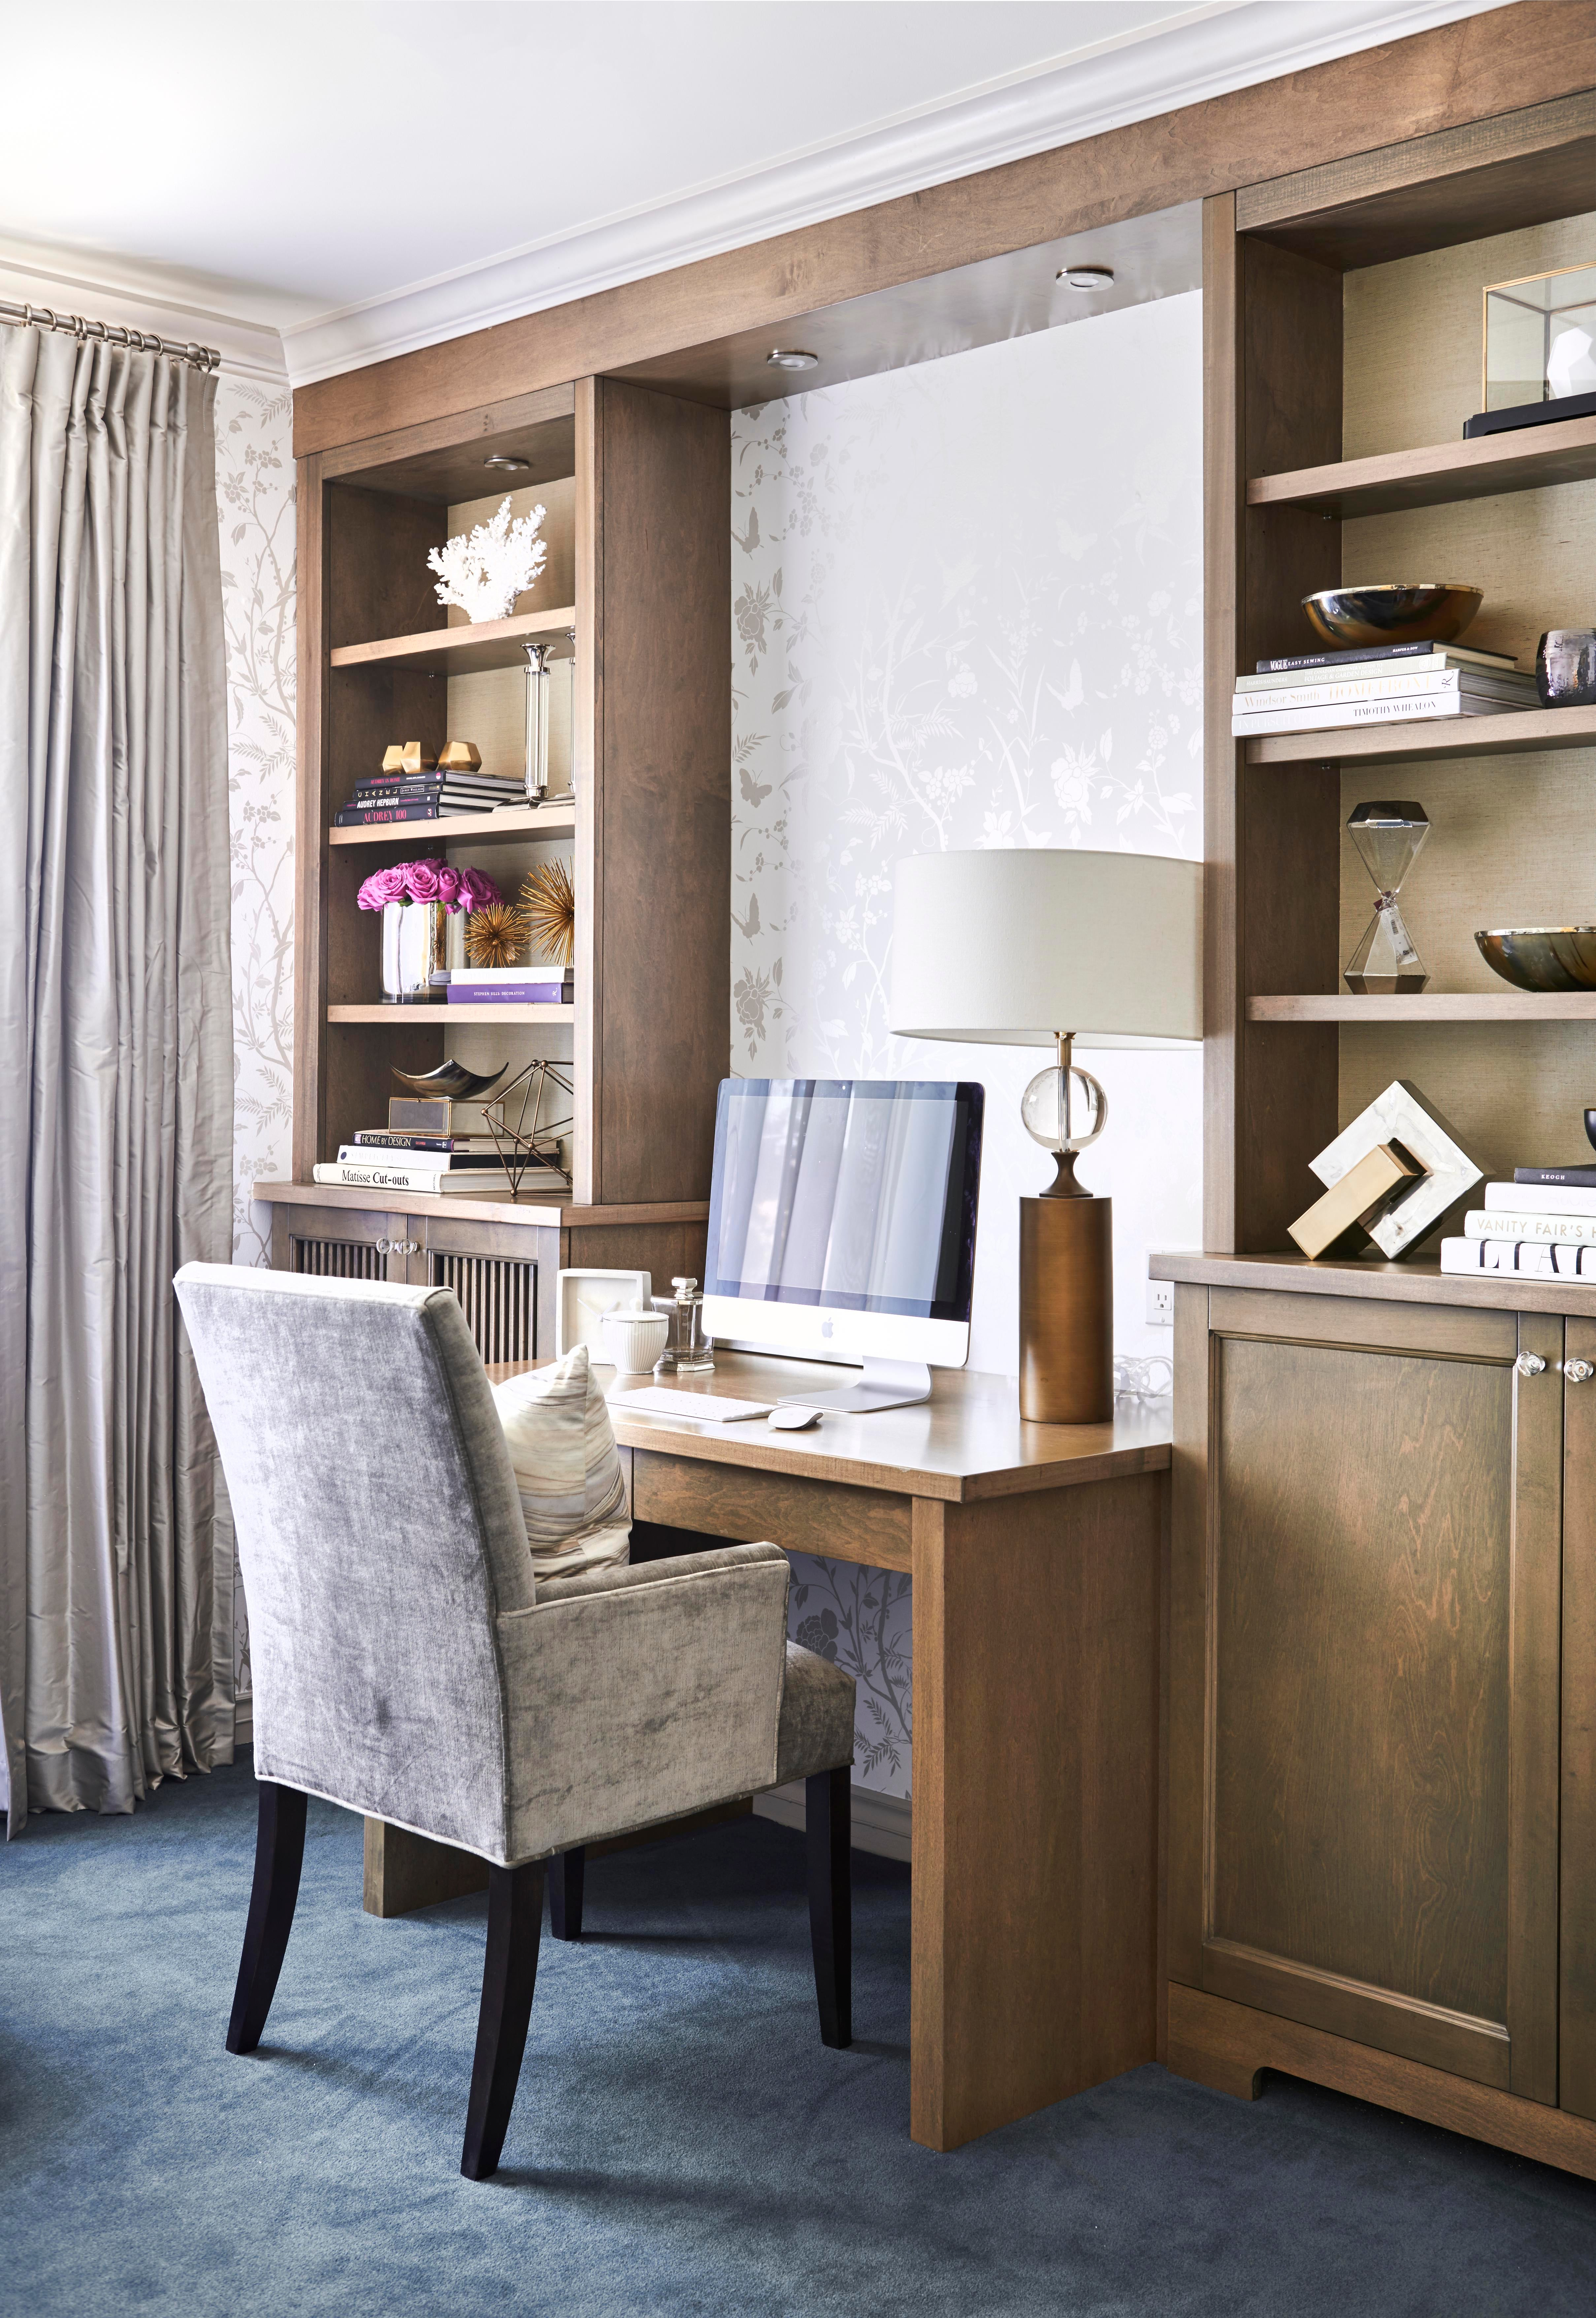 Custom Desk And BuiltIns With Silk Drapery For Regal Heights, Toronto  Office Library Home Office